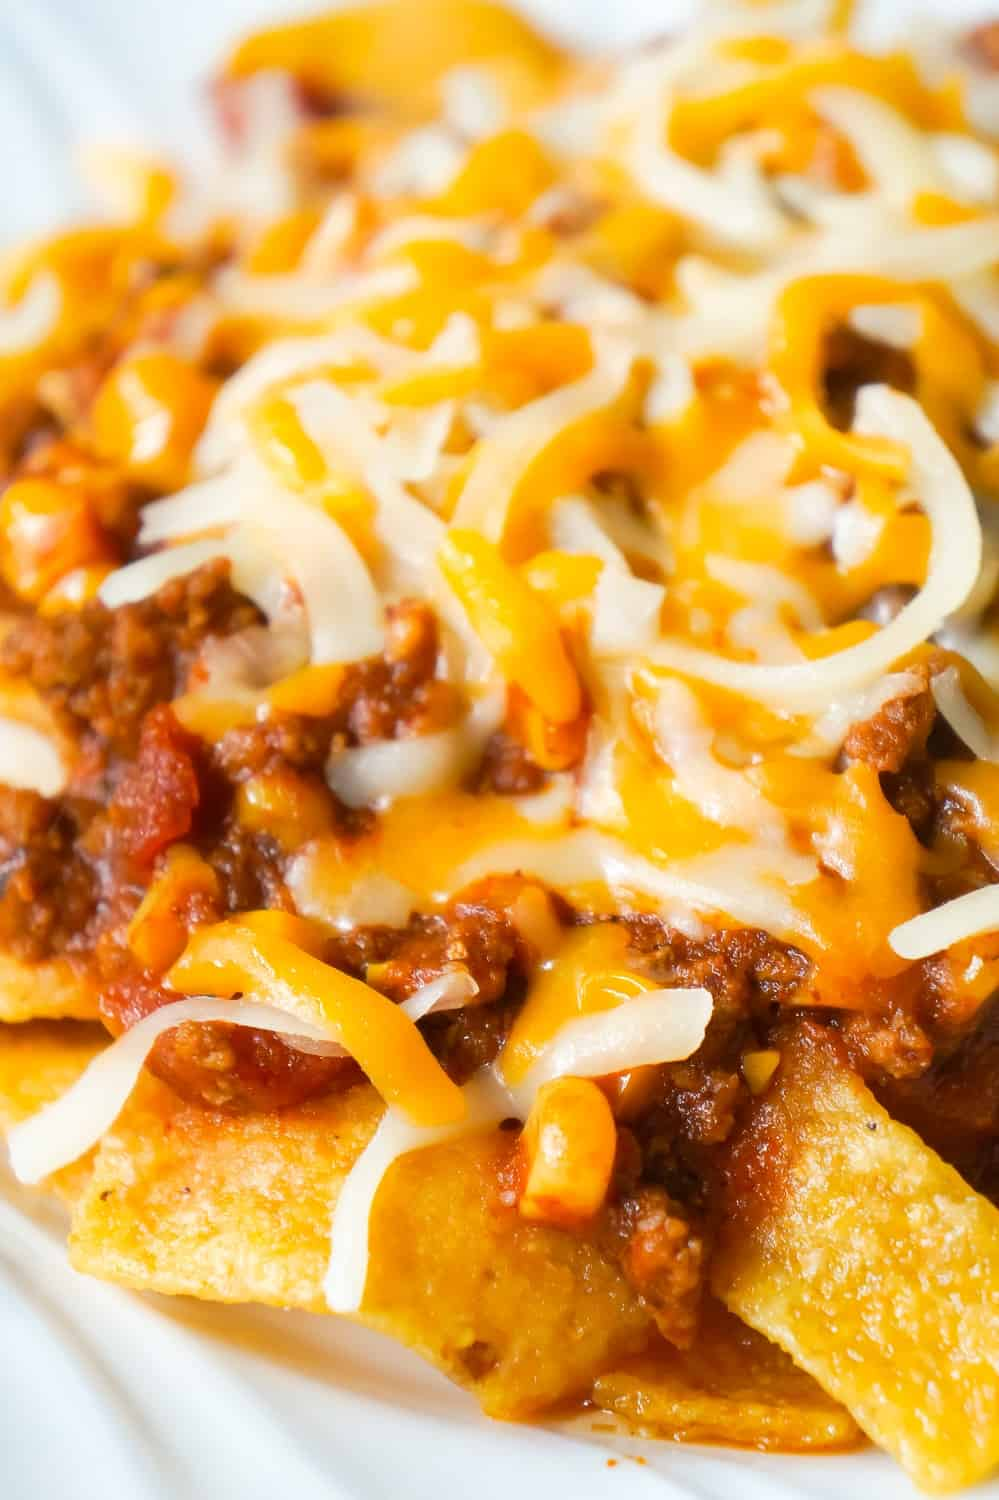 Instant Pot Frito Pie is an easy ground beef dinner recipe the whole family will love. A delicious ground beef and corn chili mixture is cooked in the Instant Pot and then poured over Frito's corn chips and topped with shredded cheese.